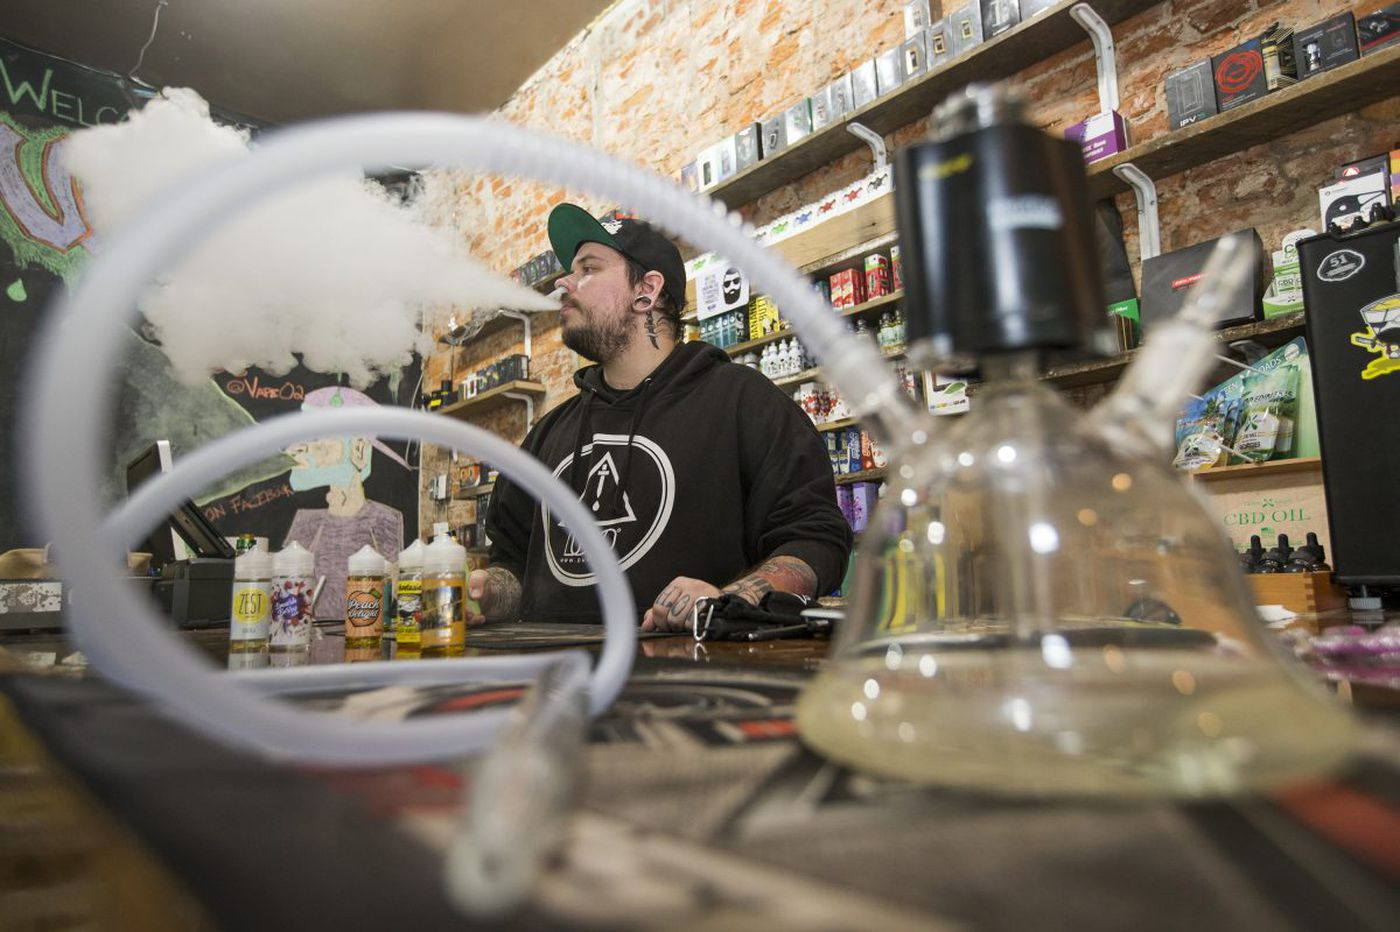 Vape tax brings in millions - and is said to close over 100 Pa. businesses